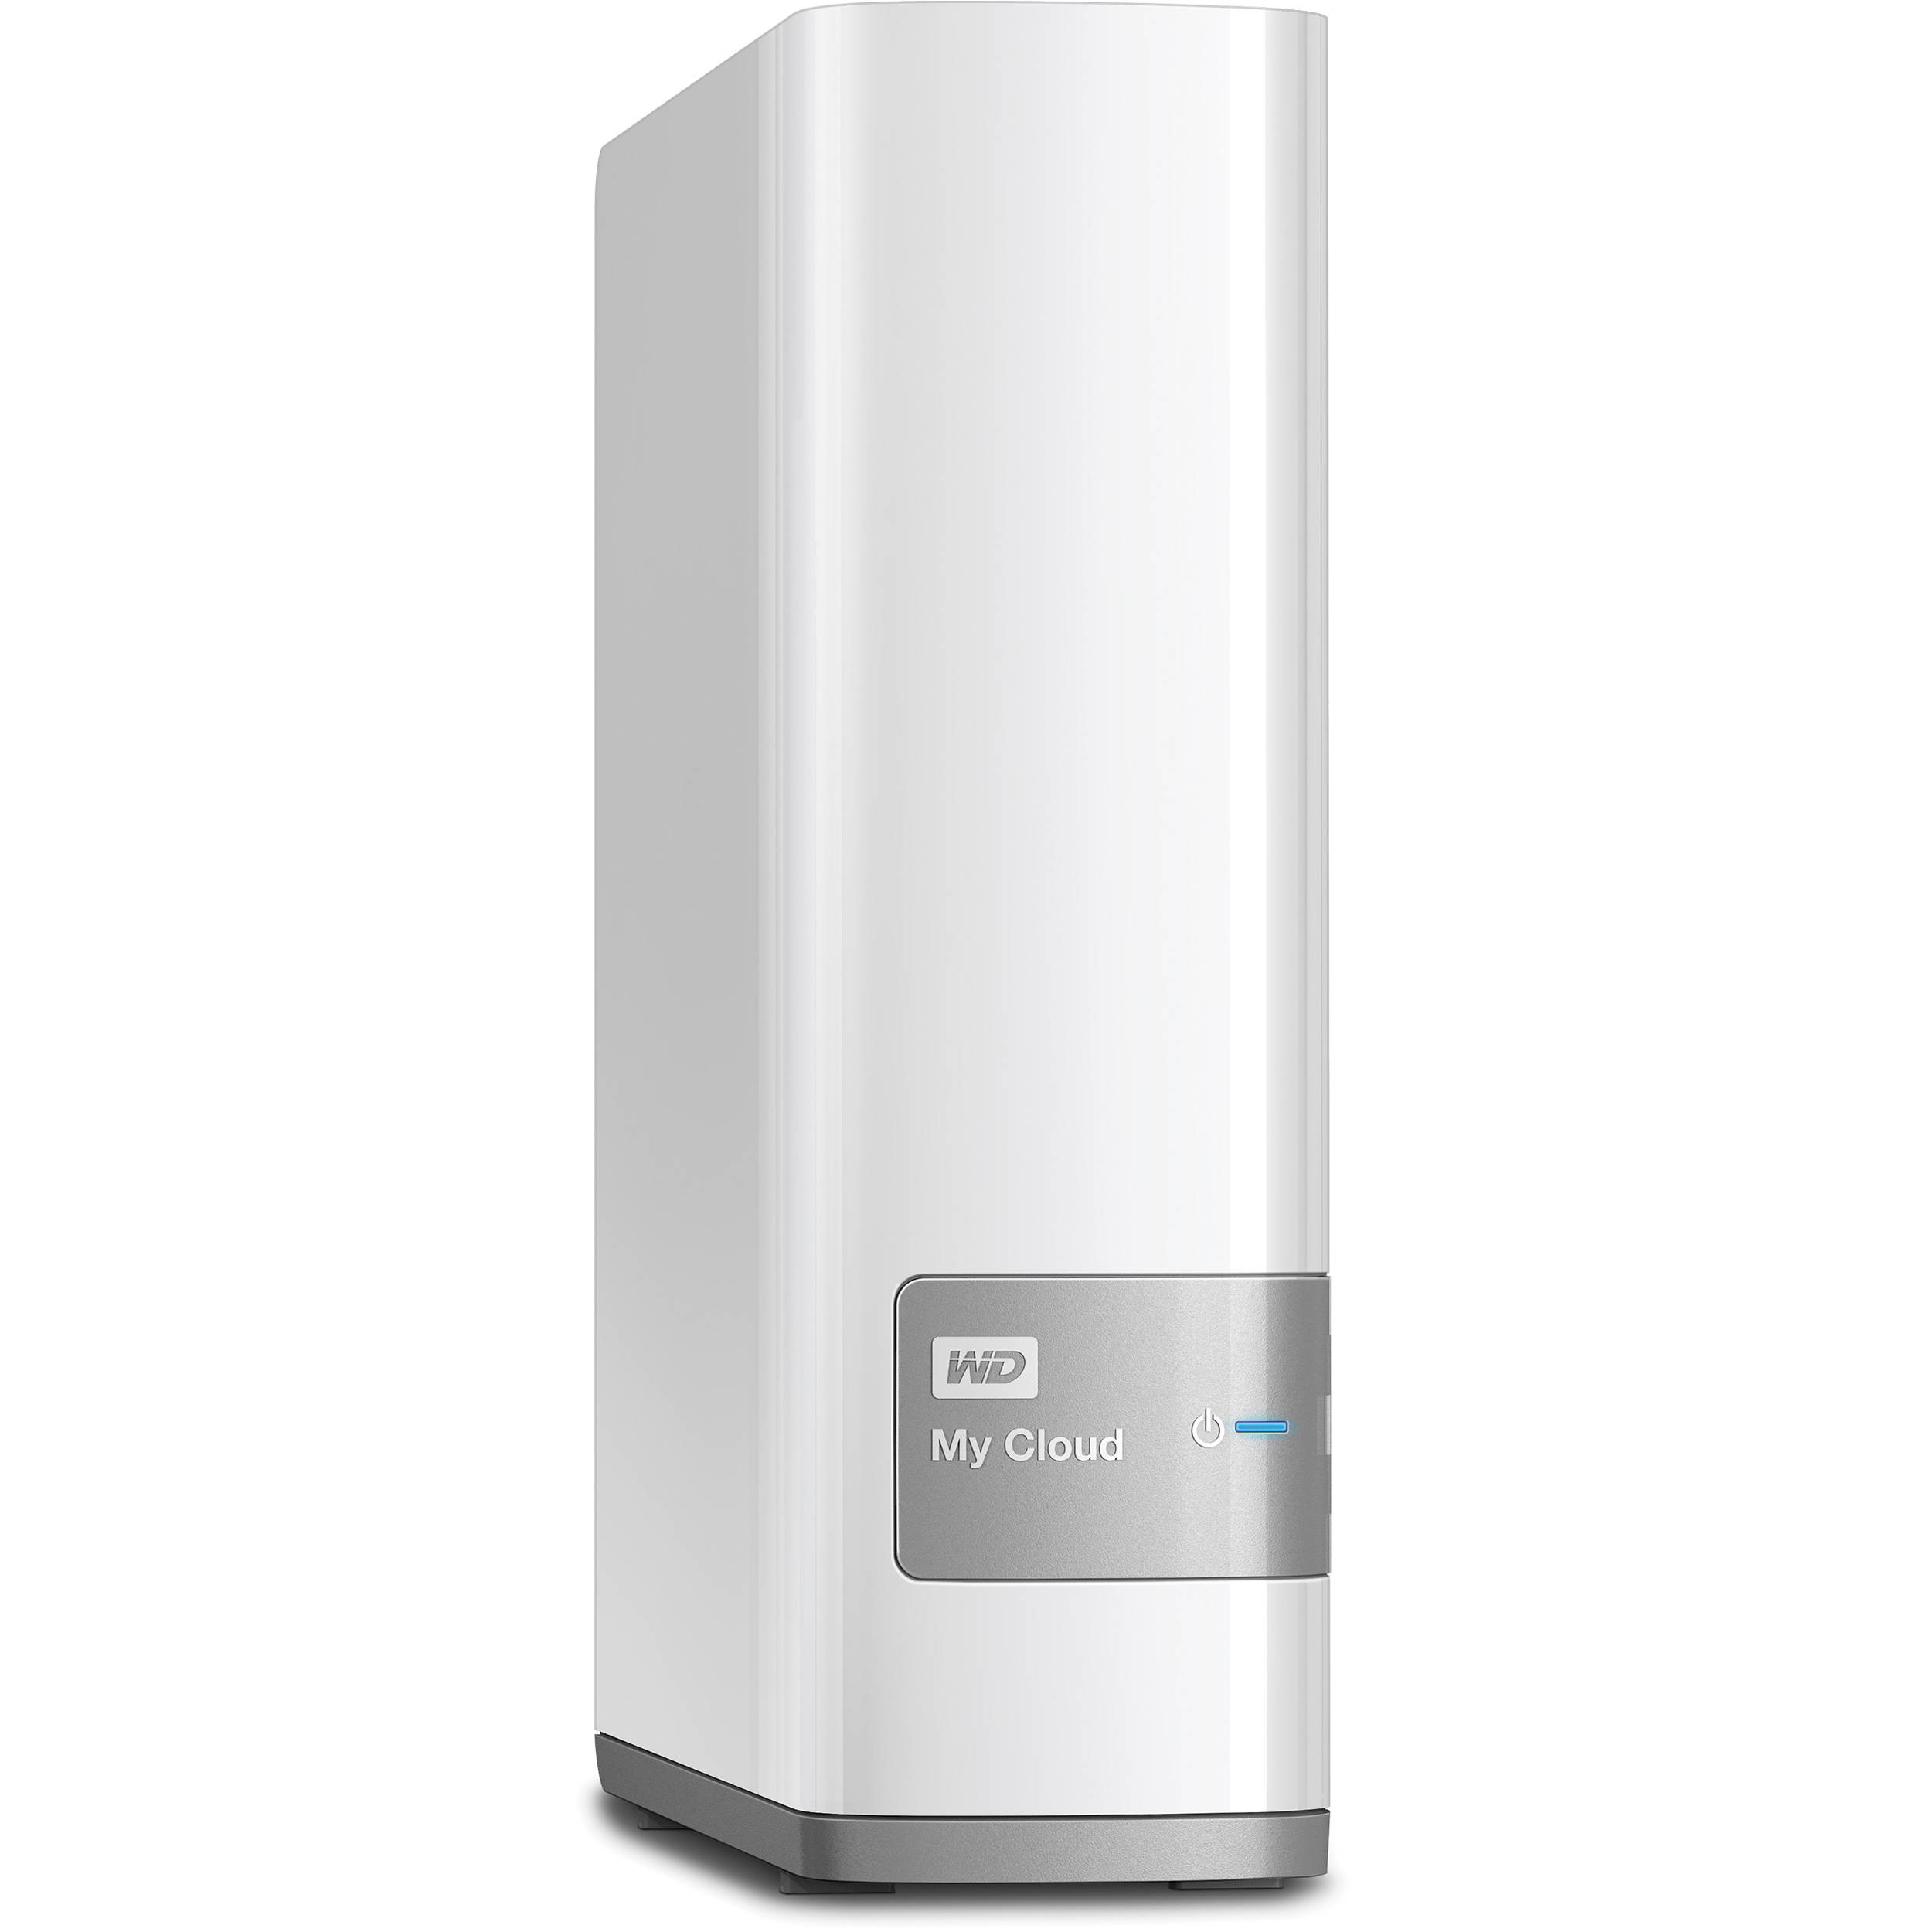 Wd 3tb my cloud personal cloud nas storage wdbctl0030hwt nesn for 3tb esterno